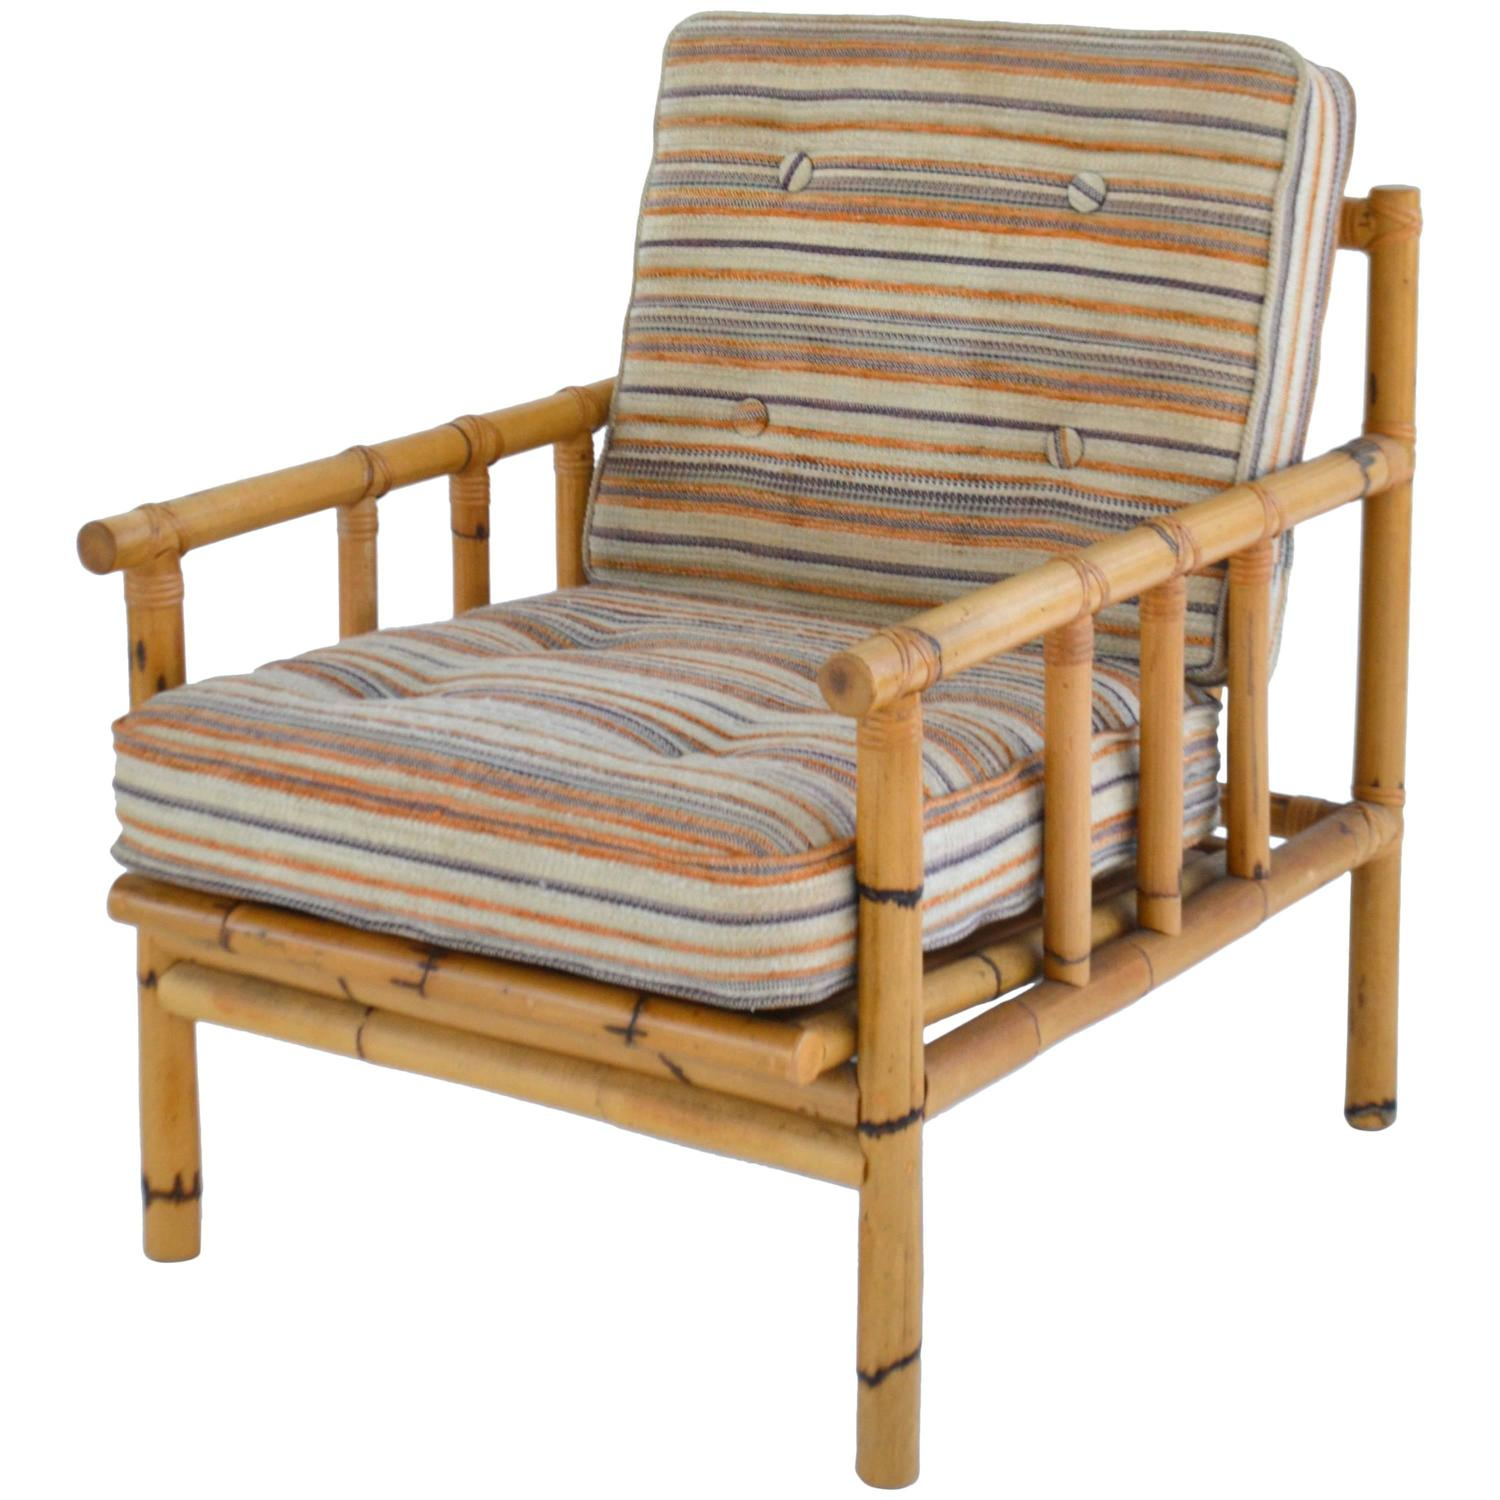 bamboo chairs wood patio chair midcentury club for sale at 1stdibs